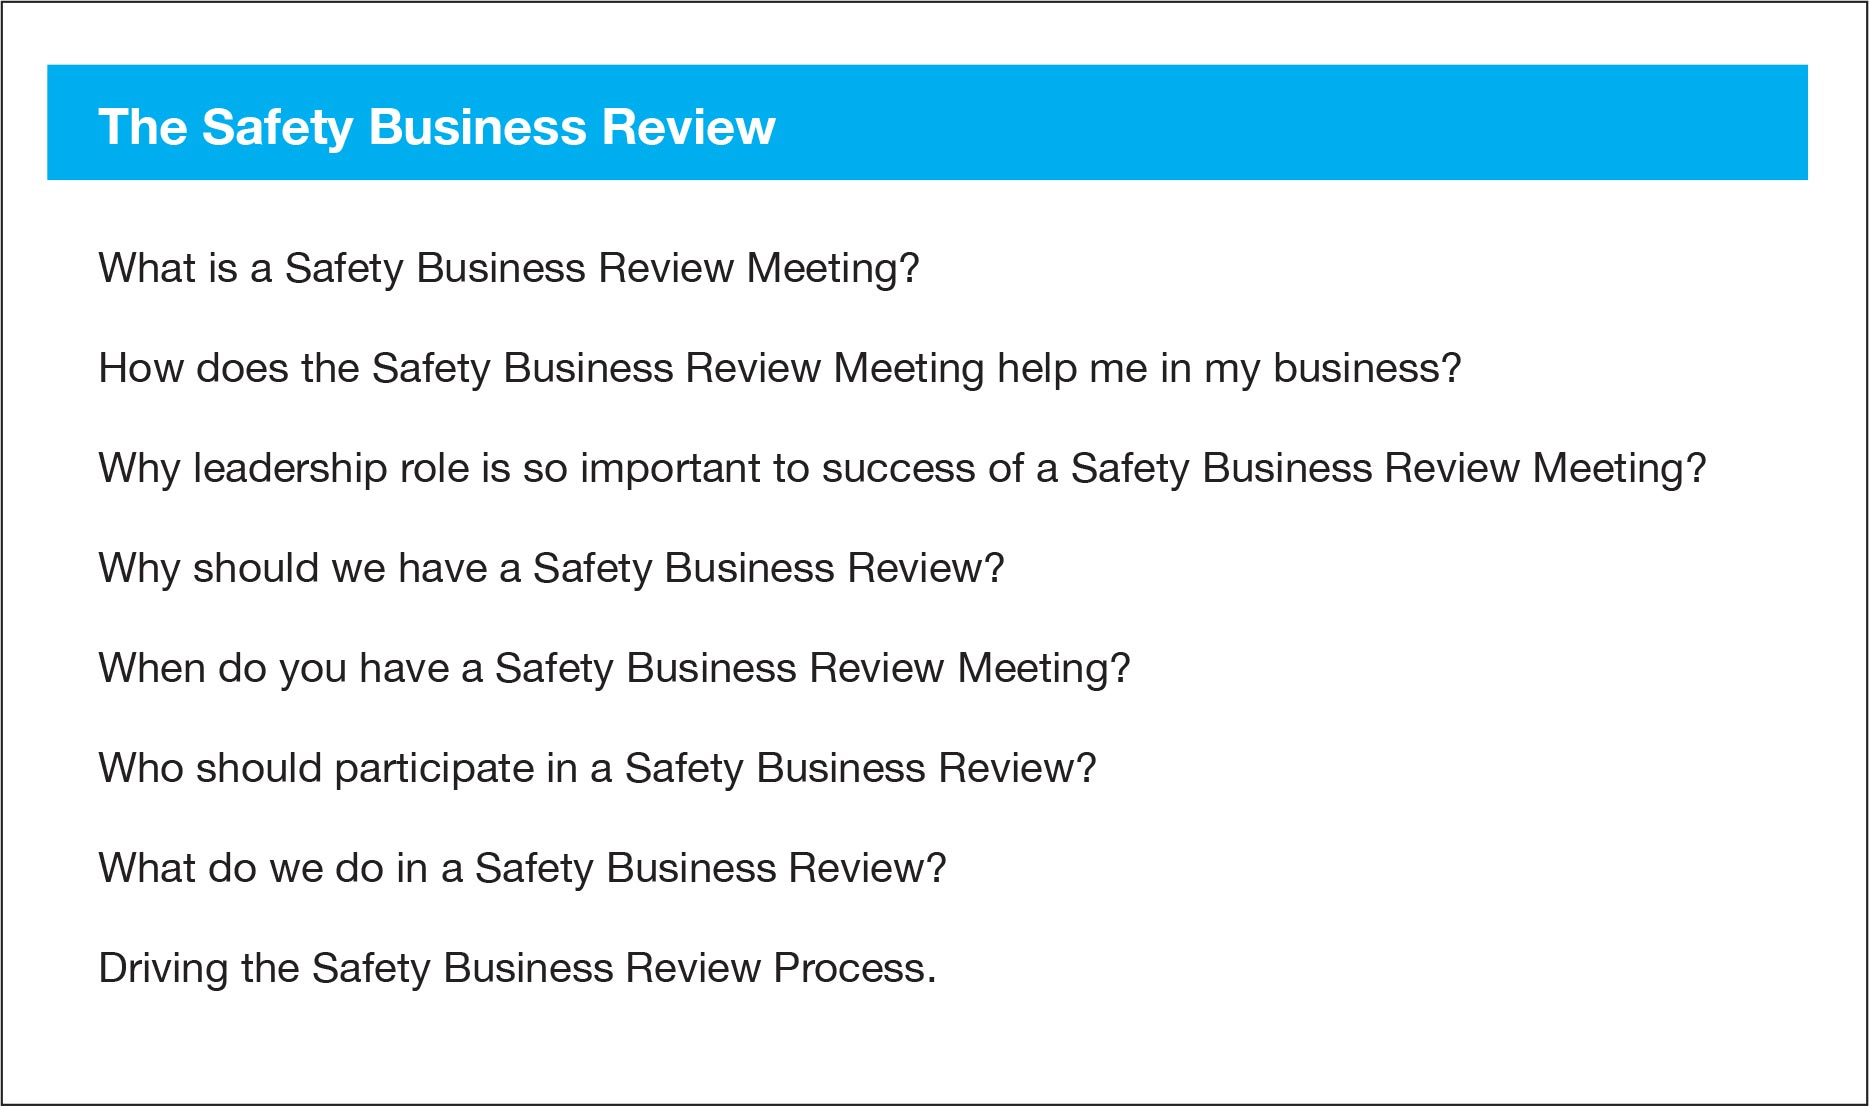 Safety-Business-Review-Questions